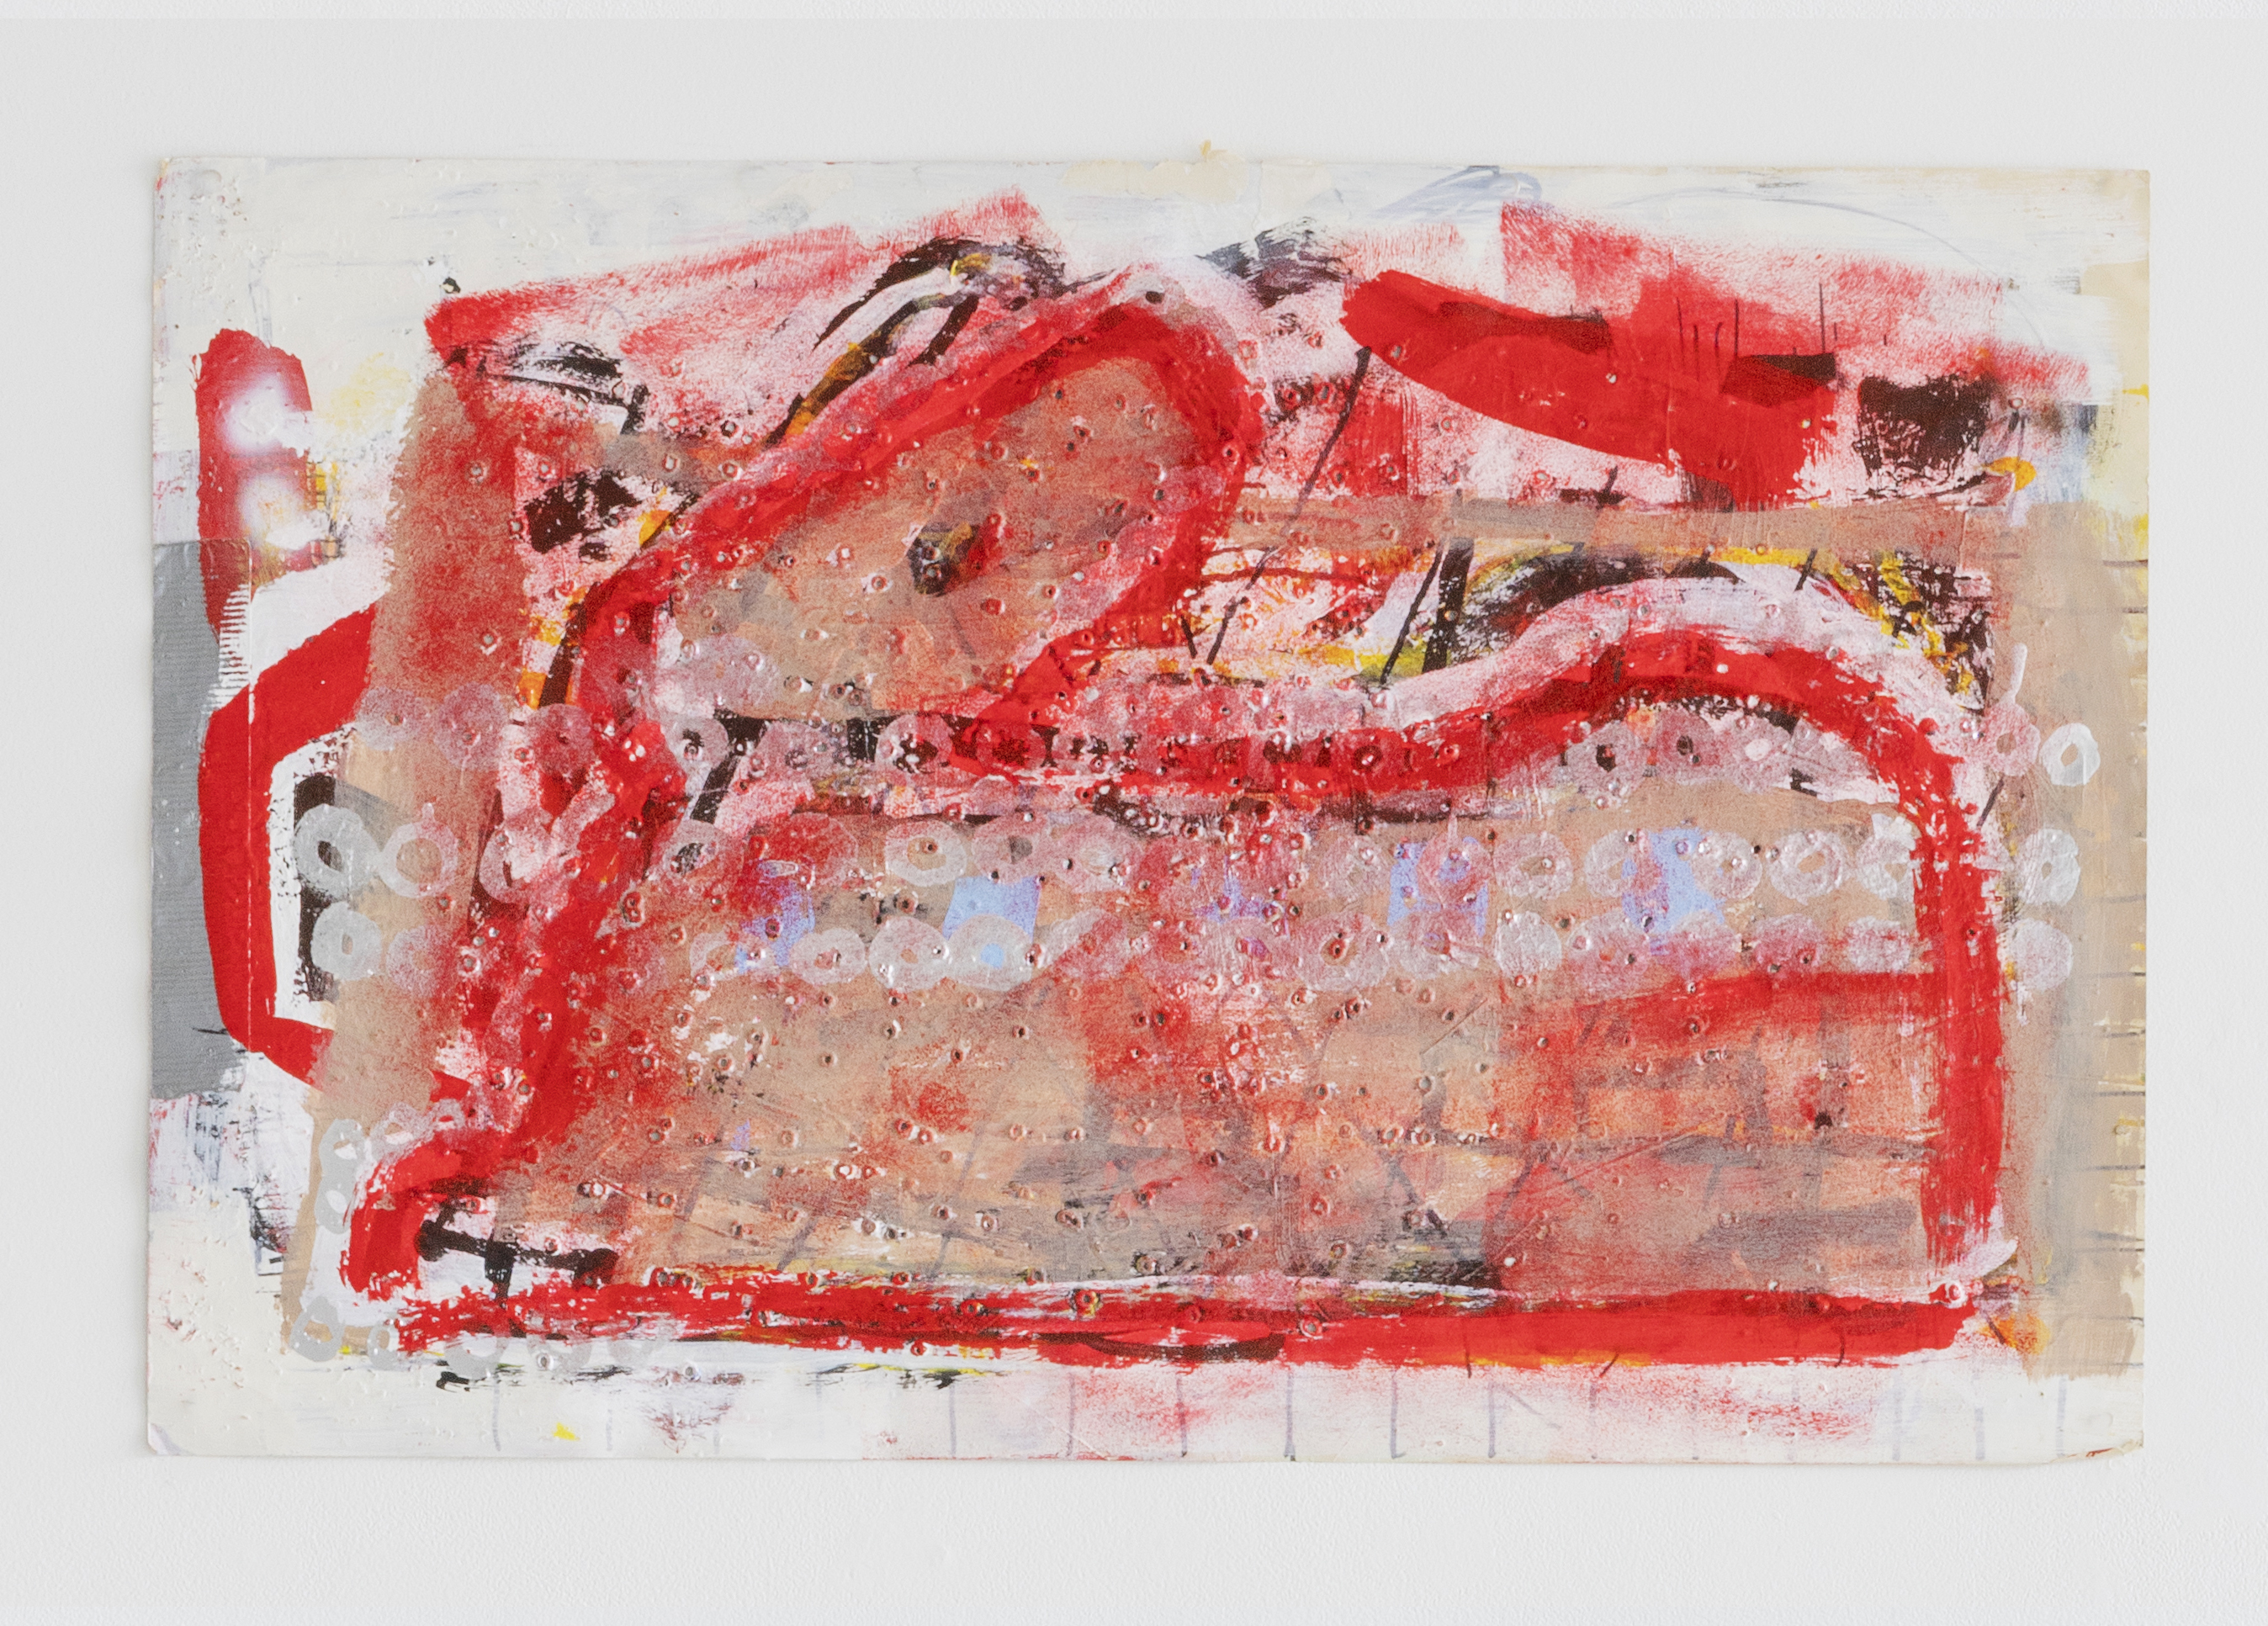 Luchs_Red_Rabbit_2_on_paper_26x40_2020_DESOUSA_GALLERY